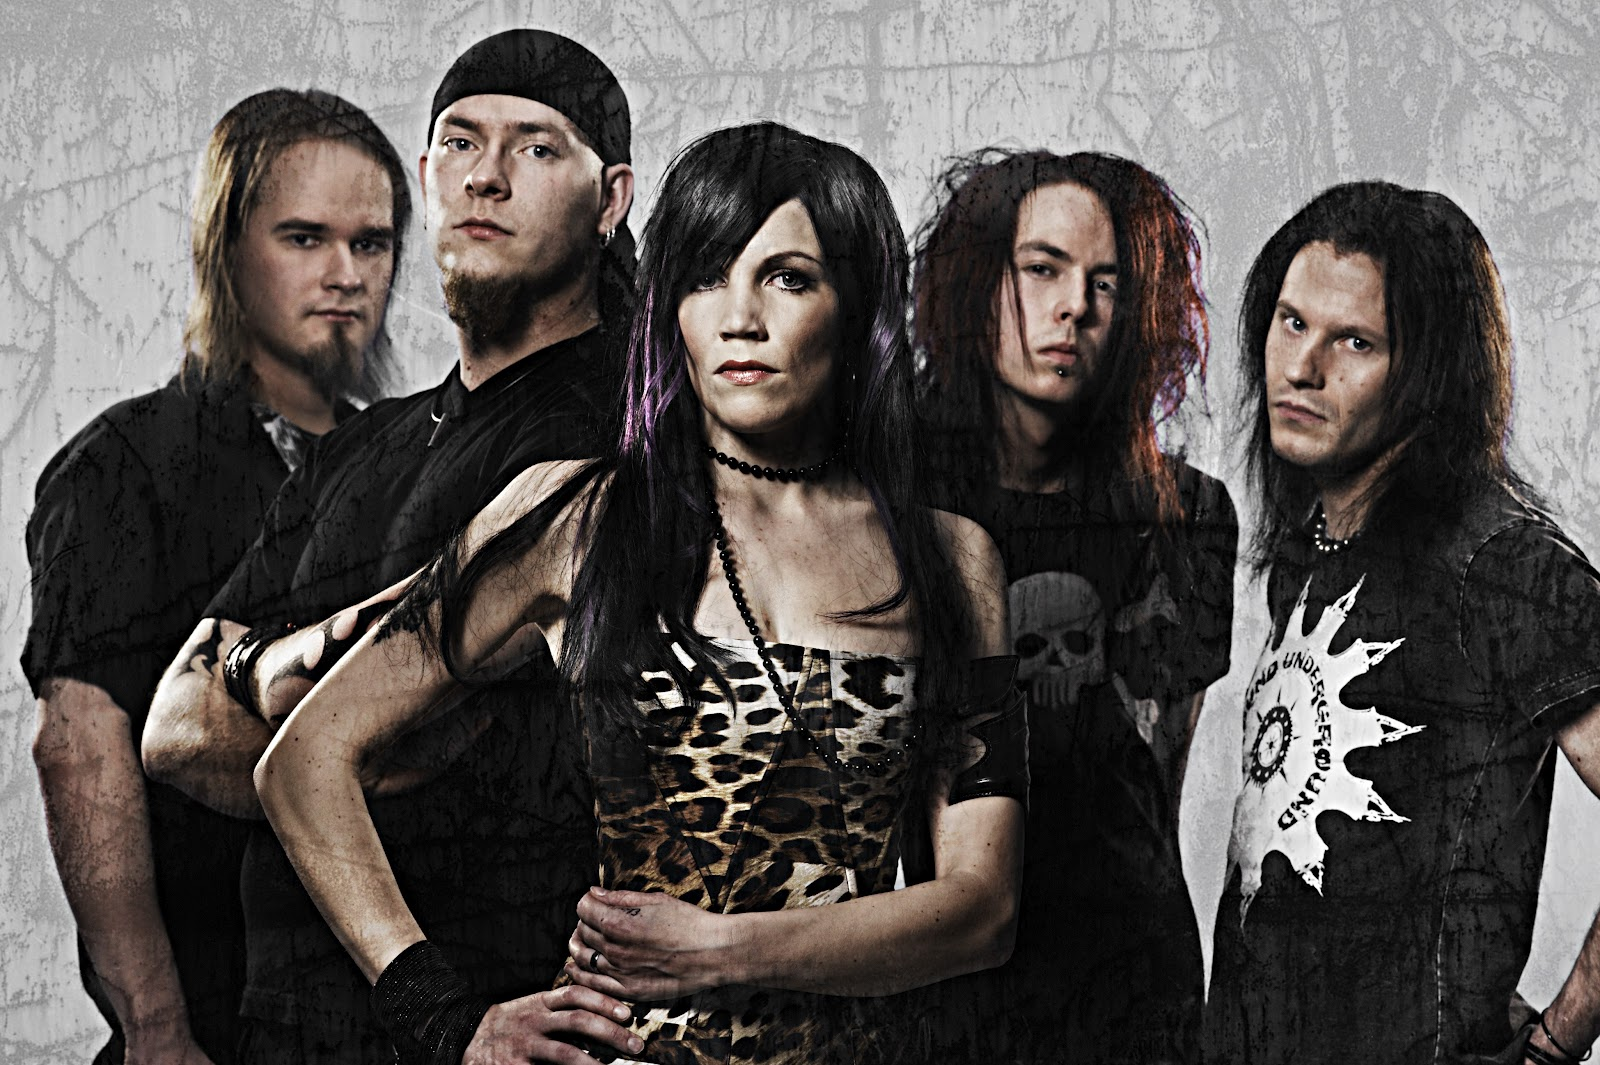 Sirens of Darkness: List of Female Metal Bands - Part 9